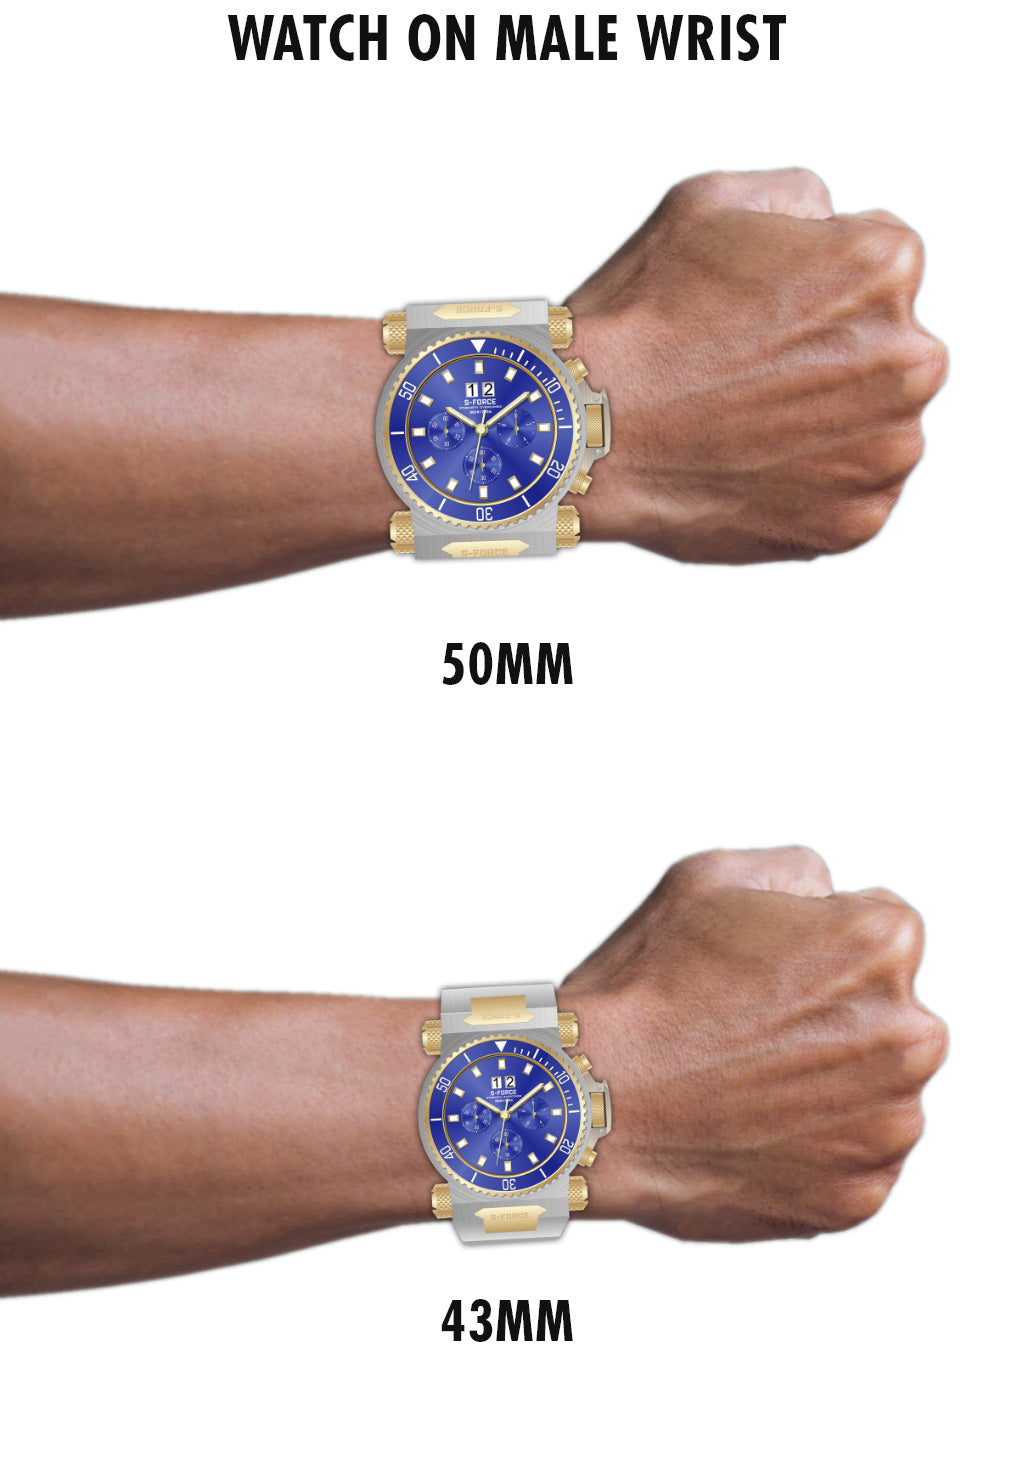 Watch on male wrist